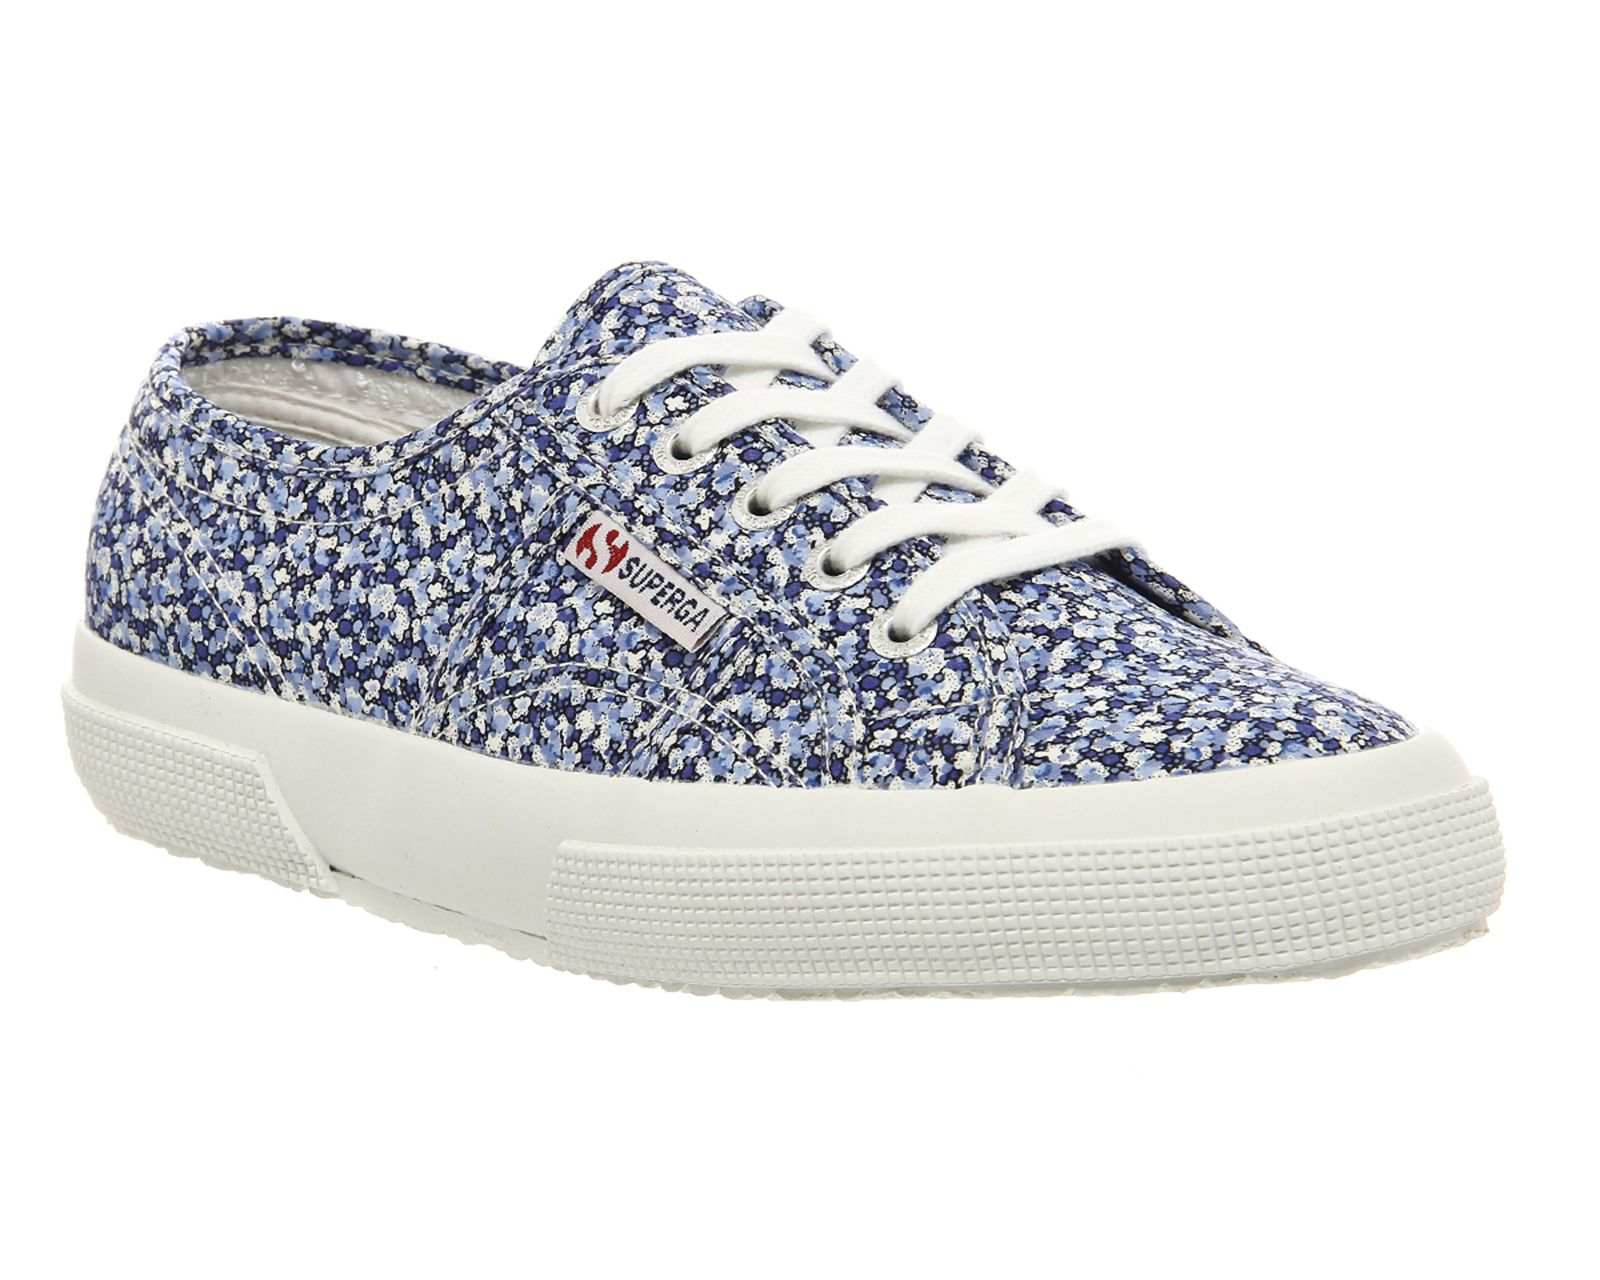 Superga Womens White Blue White Blue 2750 Floral Liberty Trainers Sole Rubber